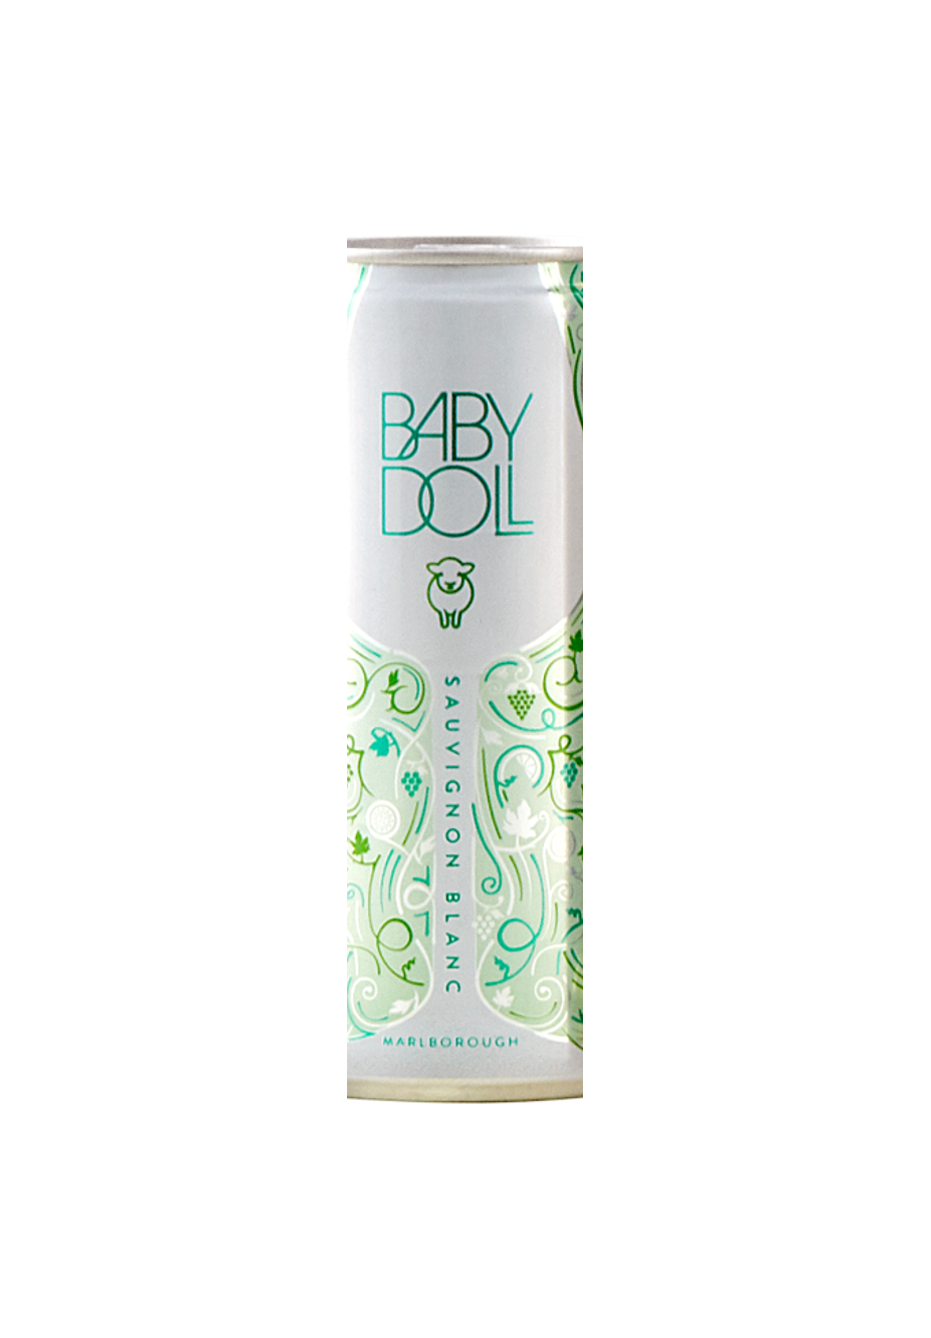 Baby Doll Marlborough Sauvignon Blanc 2018 (250 ml can)